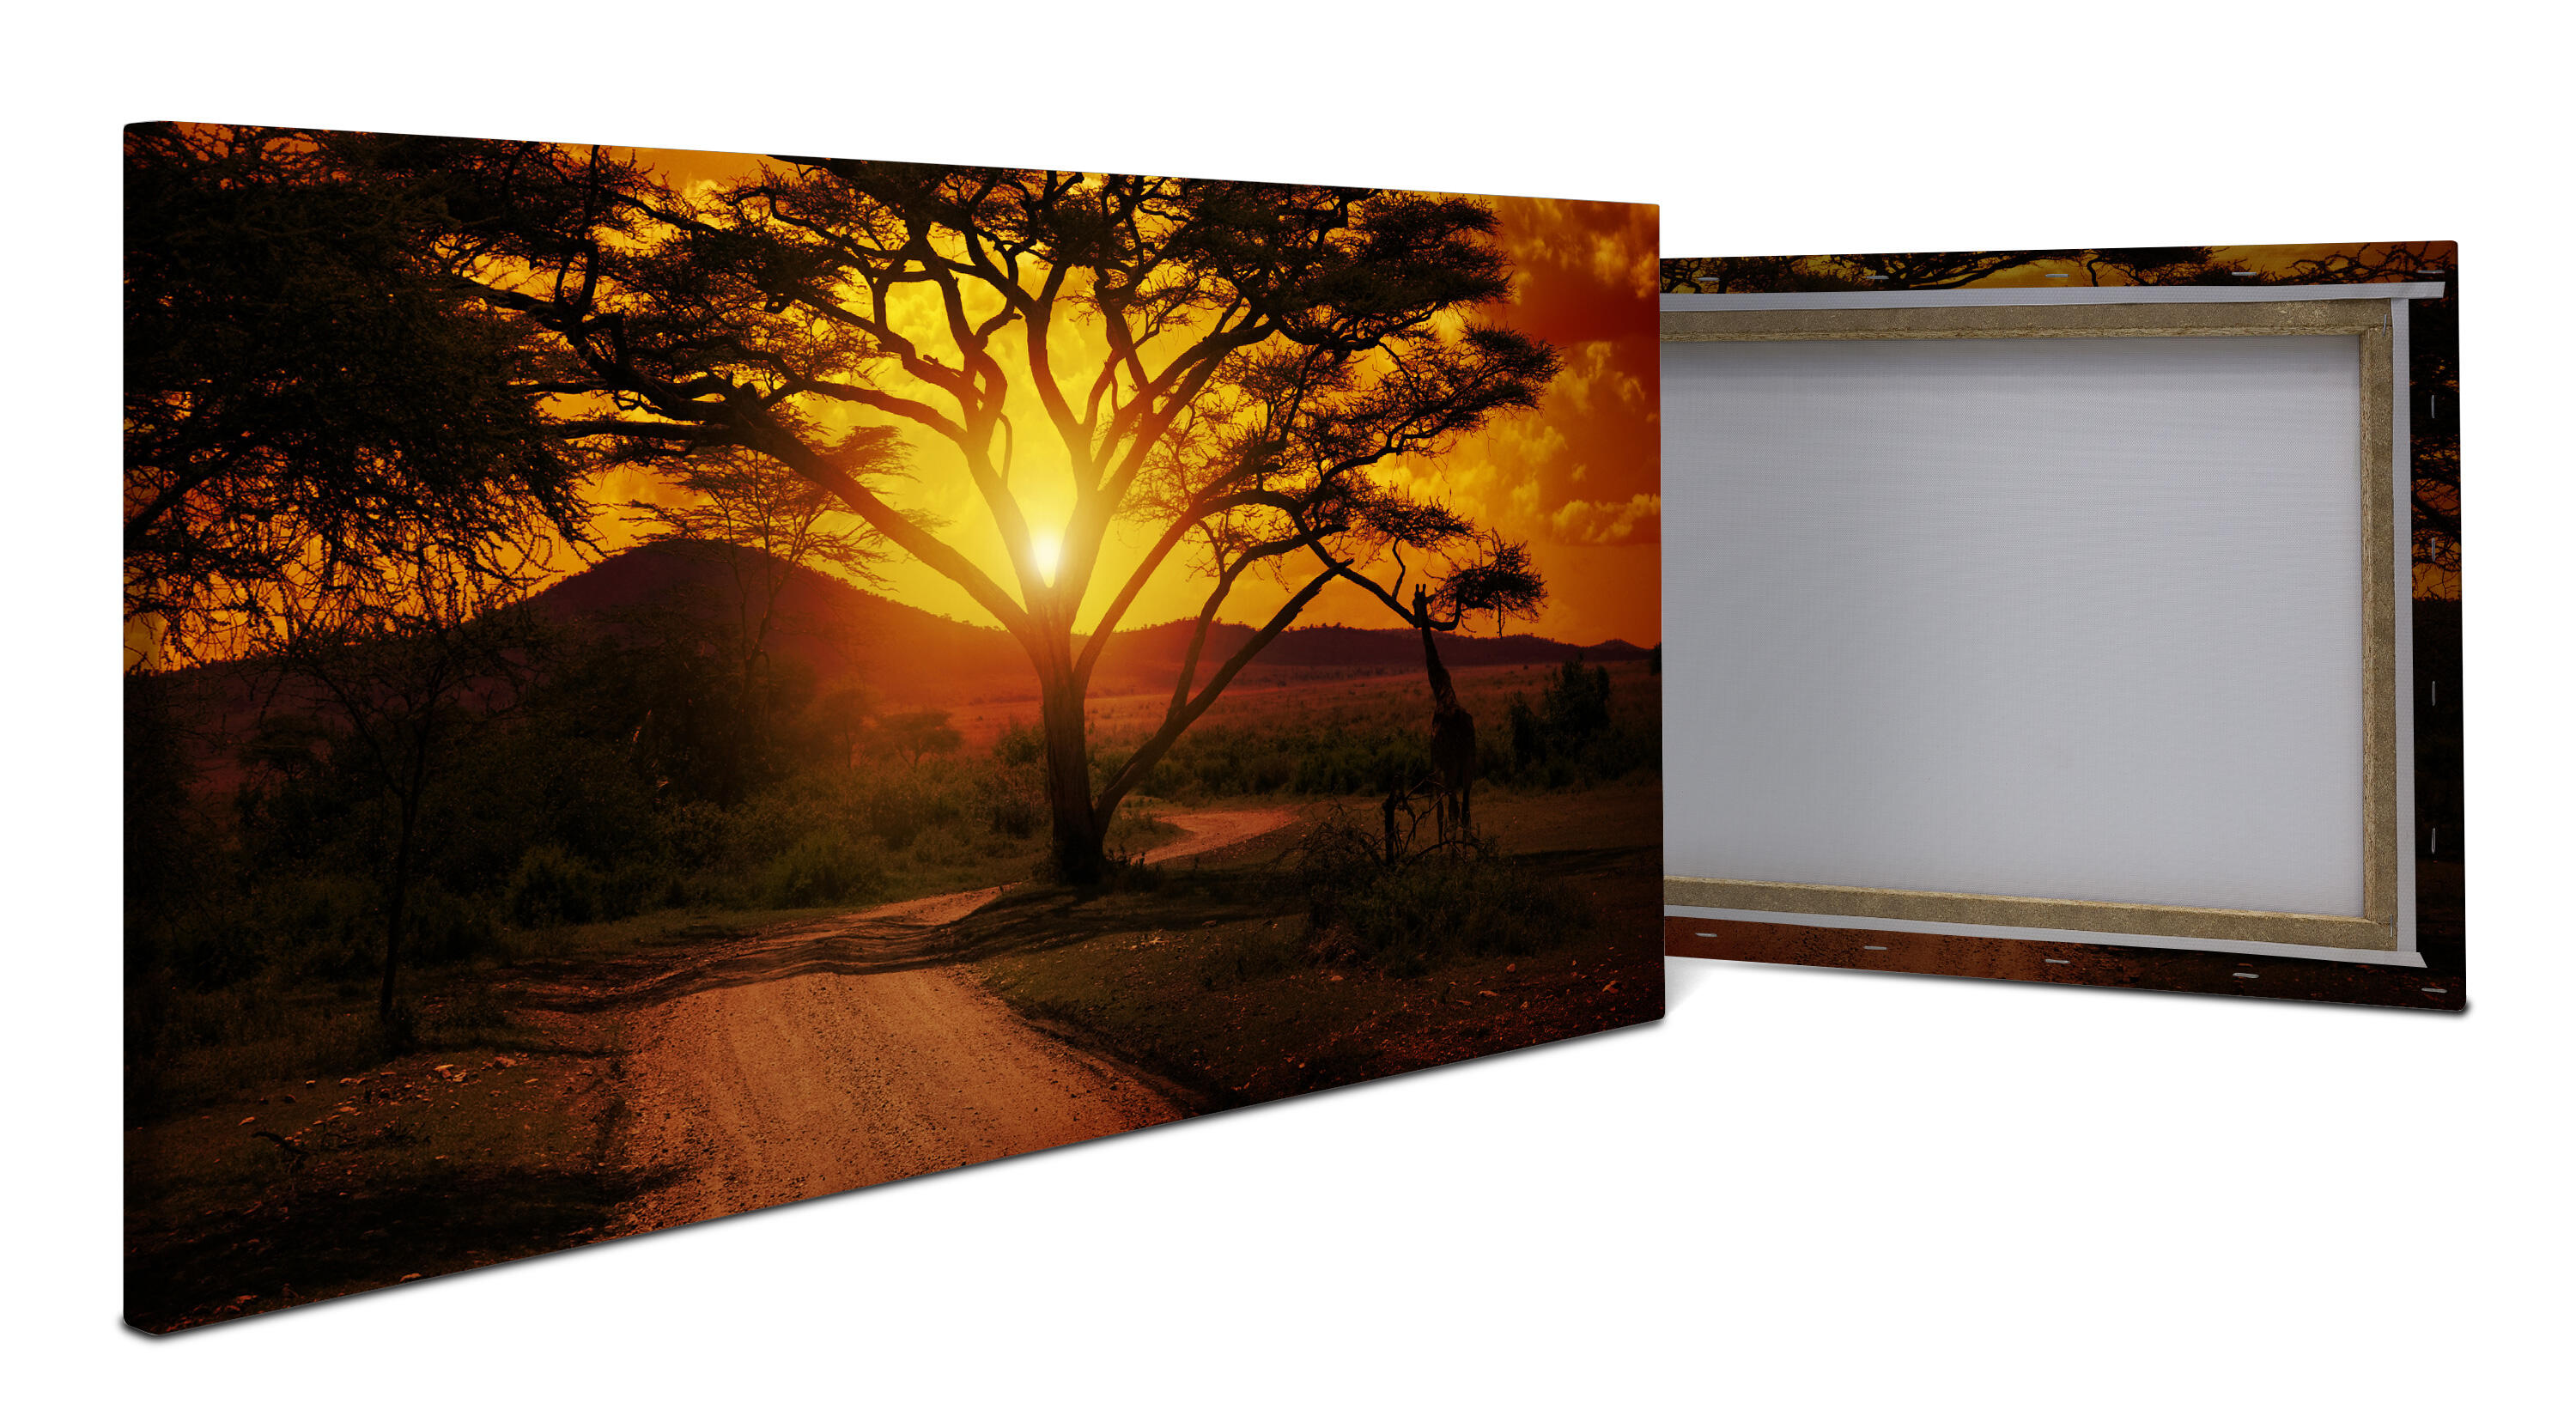 wandmotiv24 leinwandbild afrika sonnenuntergang panoramabild kunstdrucke m0001 landschaft. Black Bedroom Furniture Sets. Home Design Ideas